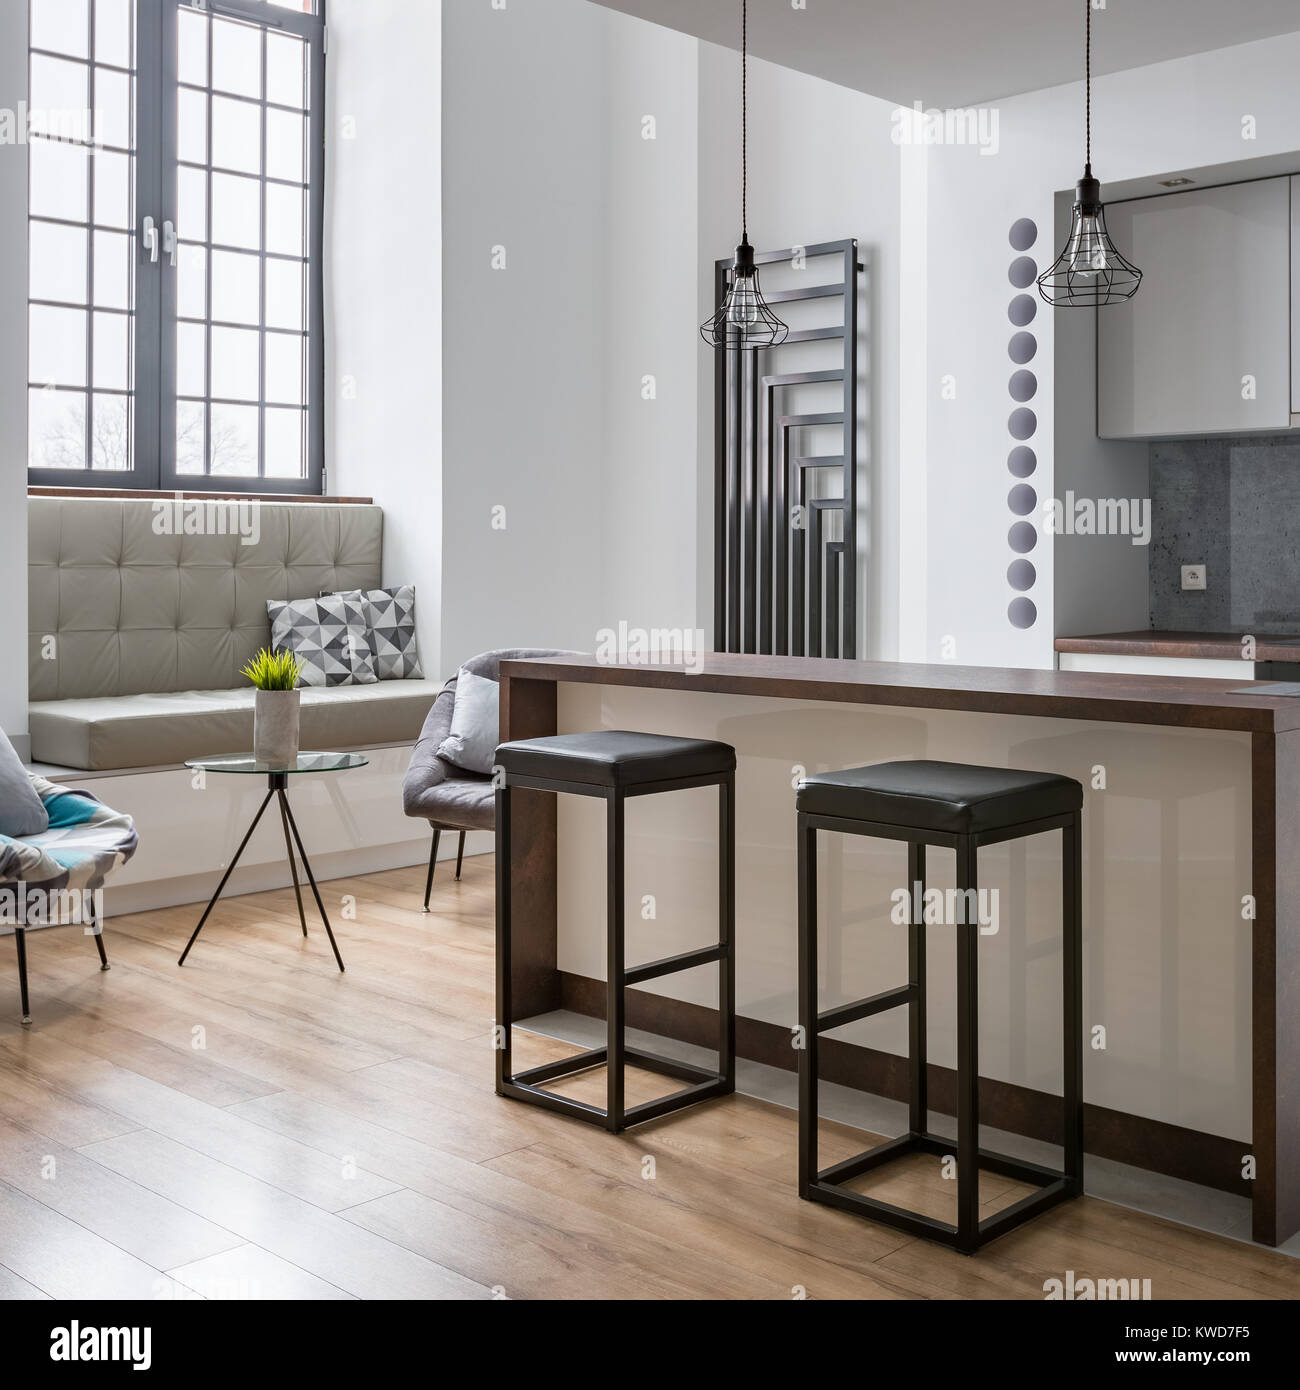 Interior with kitchen island bar stools and modern lamps